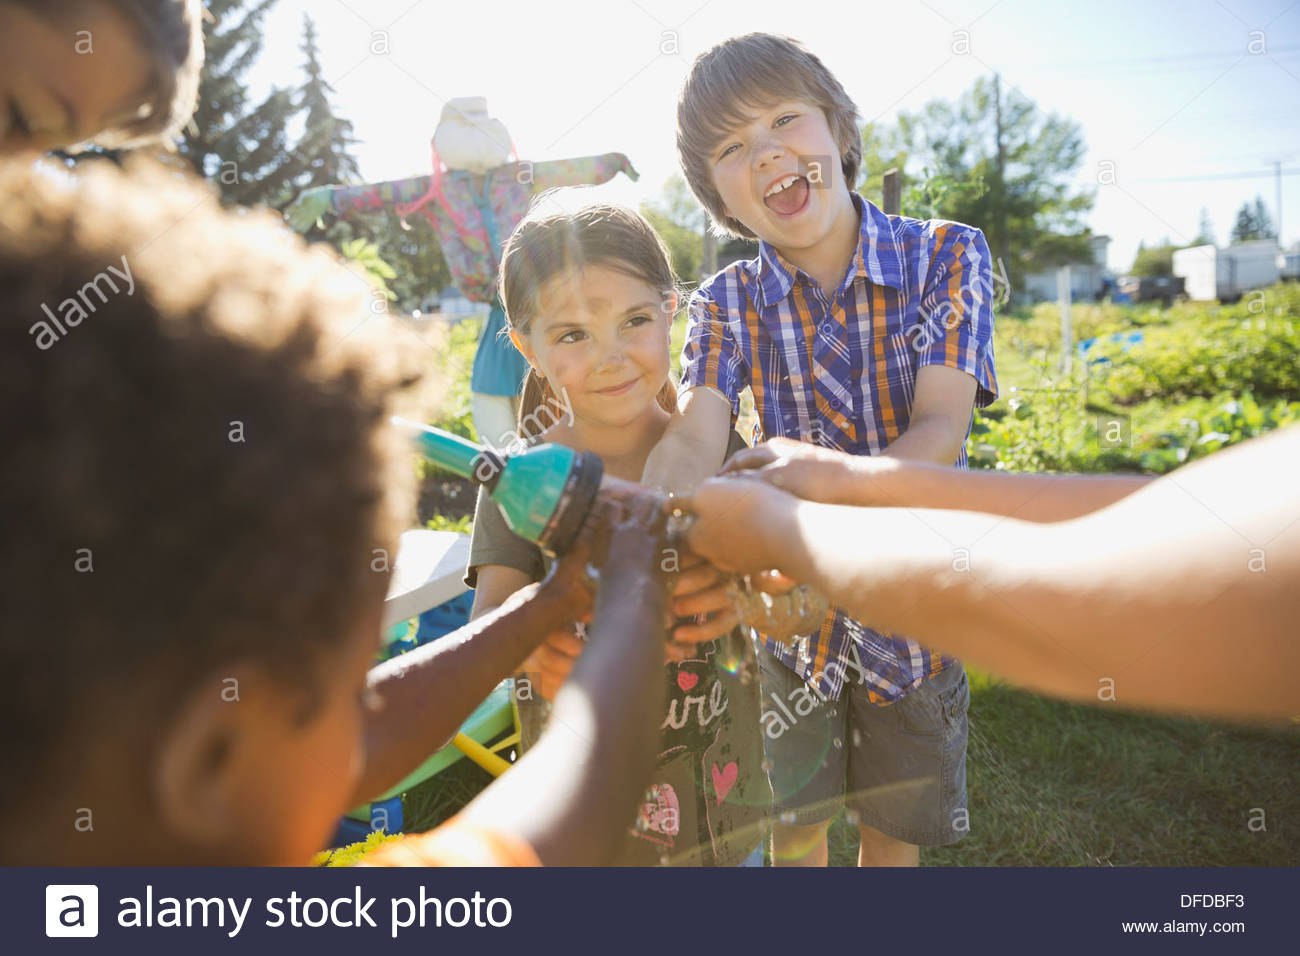 Children washing hands together with garden hose - Stock Image